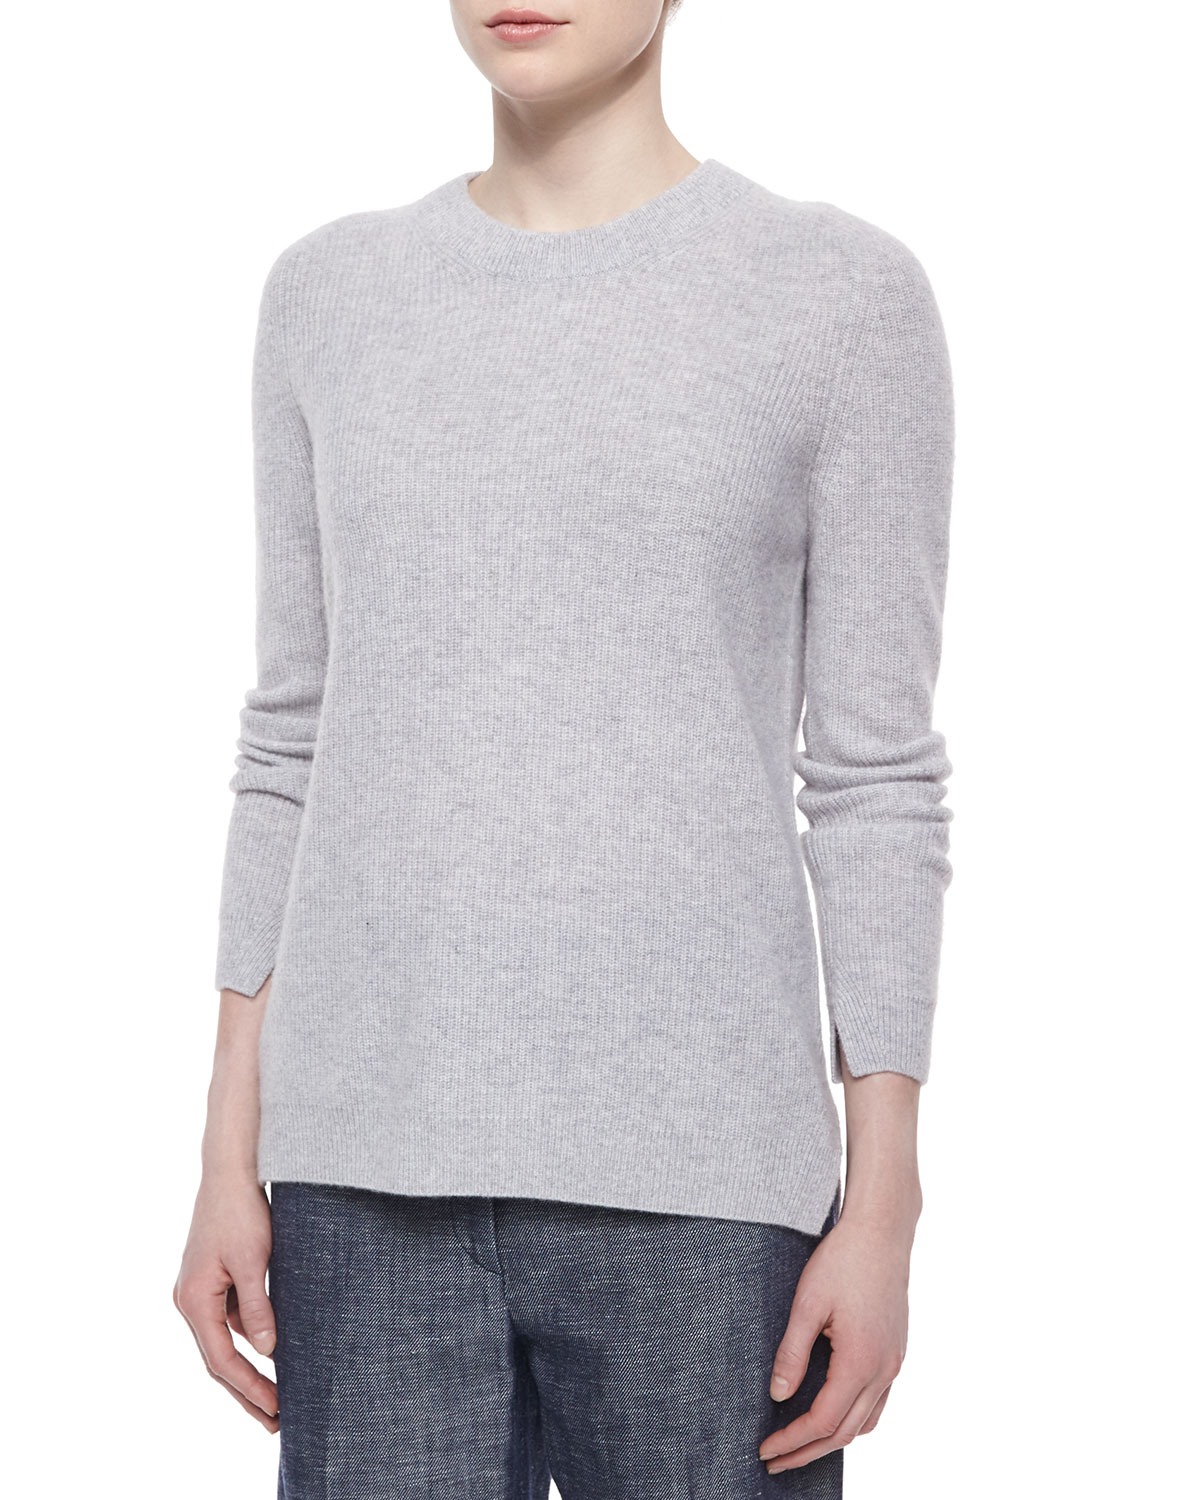 Rag & bone Cashmere Valentina Ribbed Sweater in Gray   Lyst